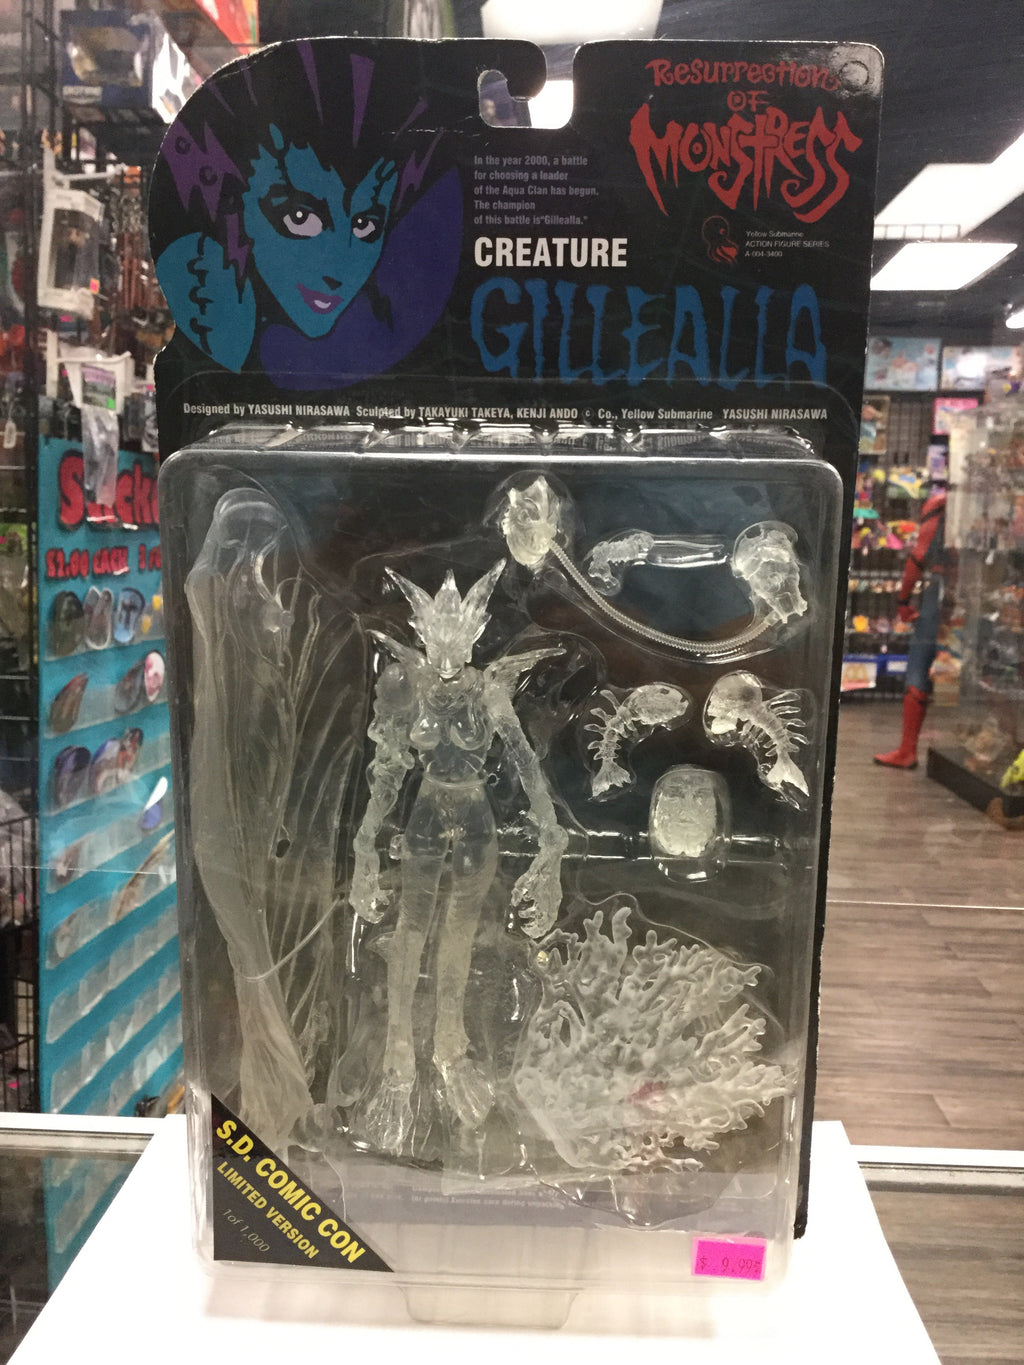 YELLOW SUBMARINE Resurrection of Monstress, Creature Gillealla (SDCC Limited Edition 1 of 1000)